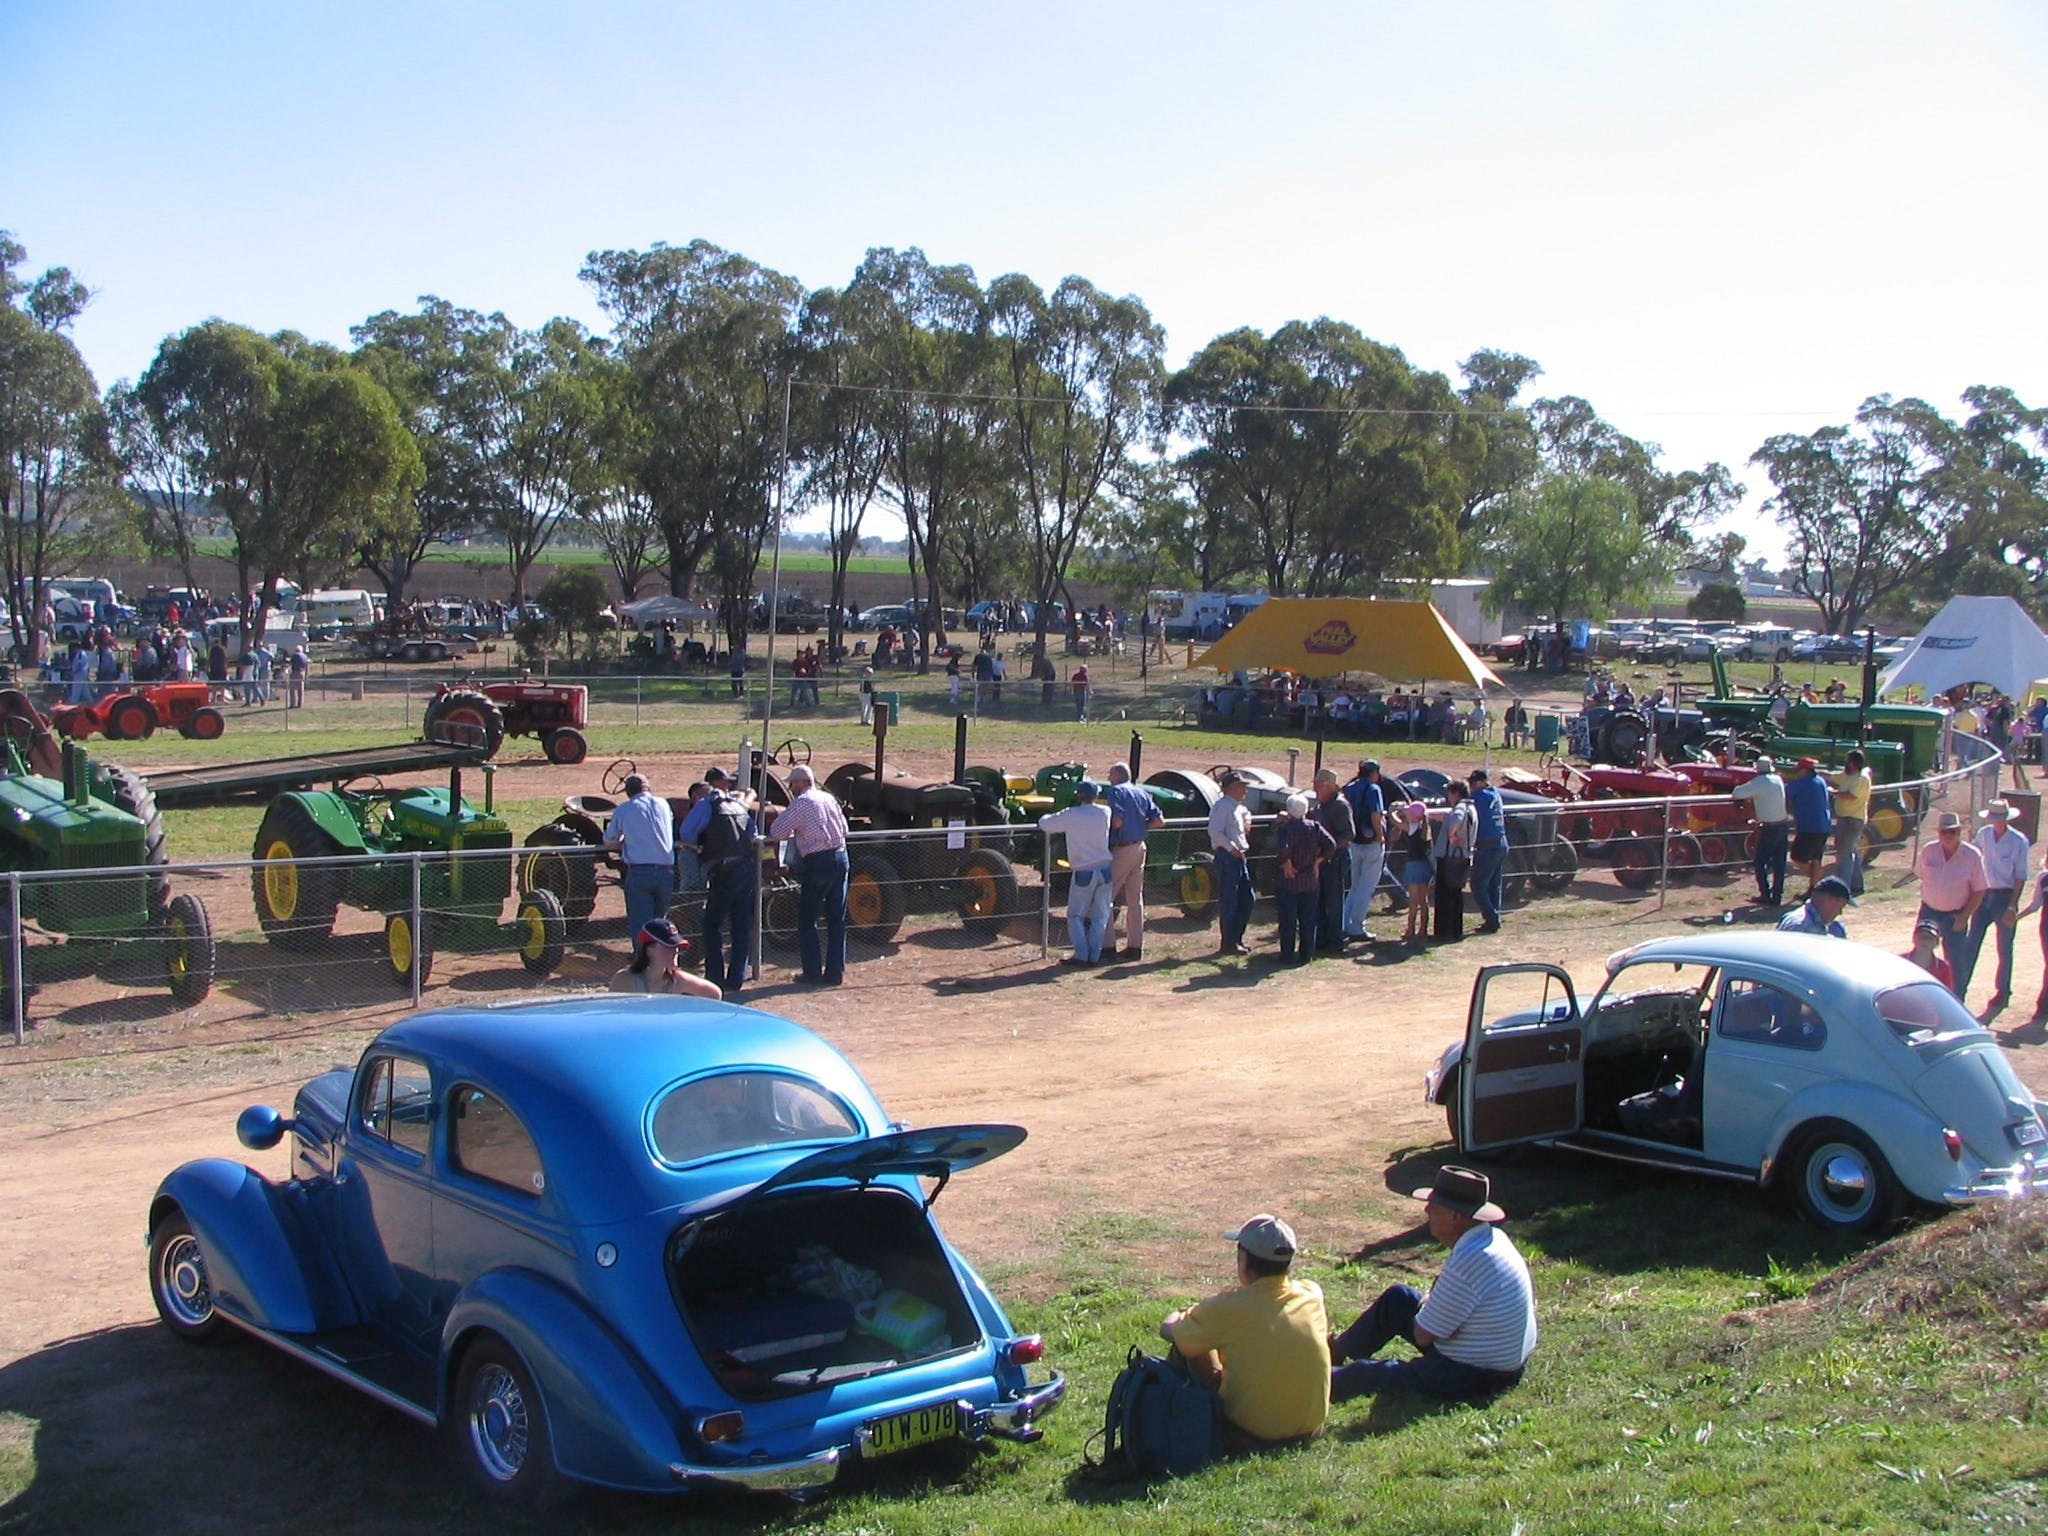 Quirindi Rural Heritage Village - Vintage Machinery and Miniature Railway Rally and Swap Meet - Palm Beach Accommodation